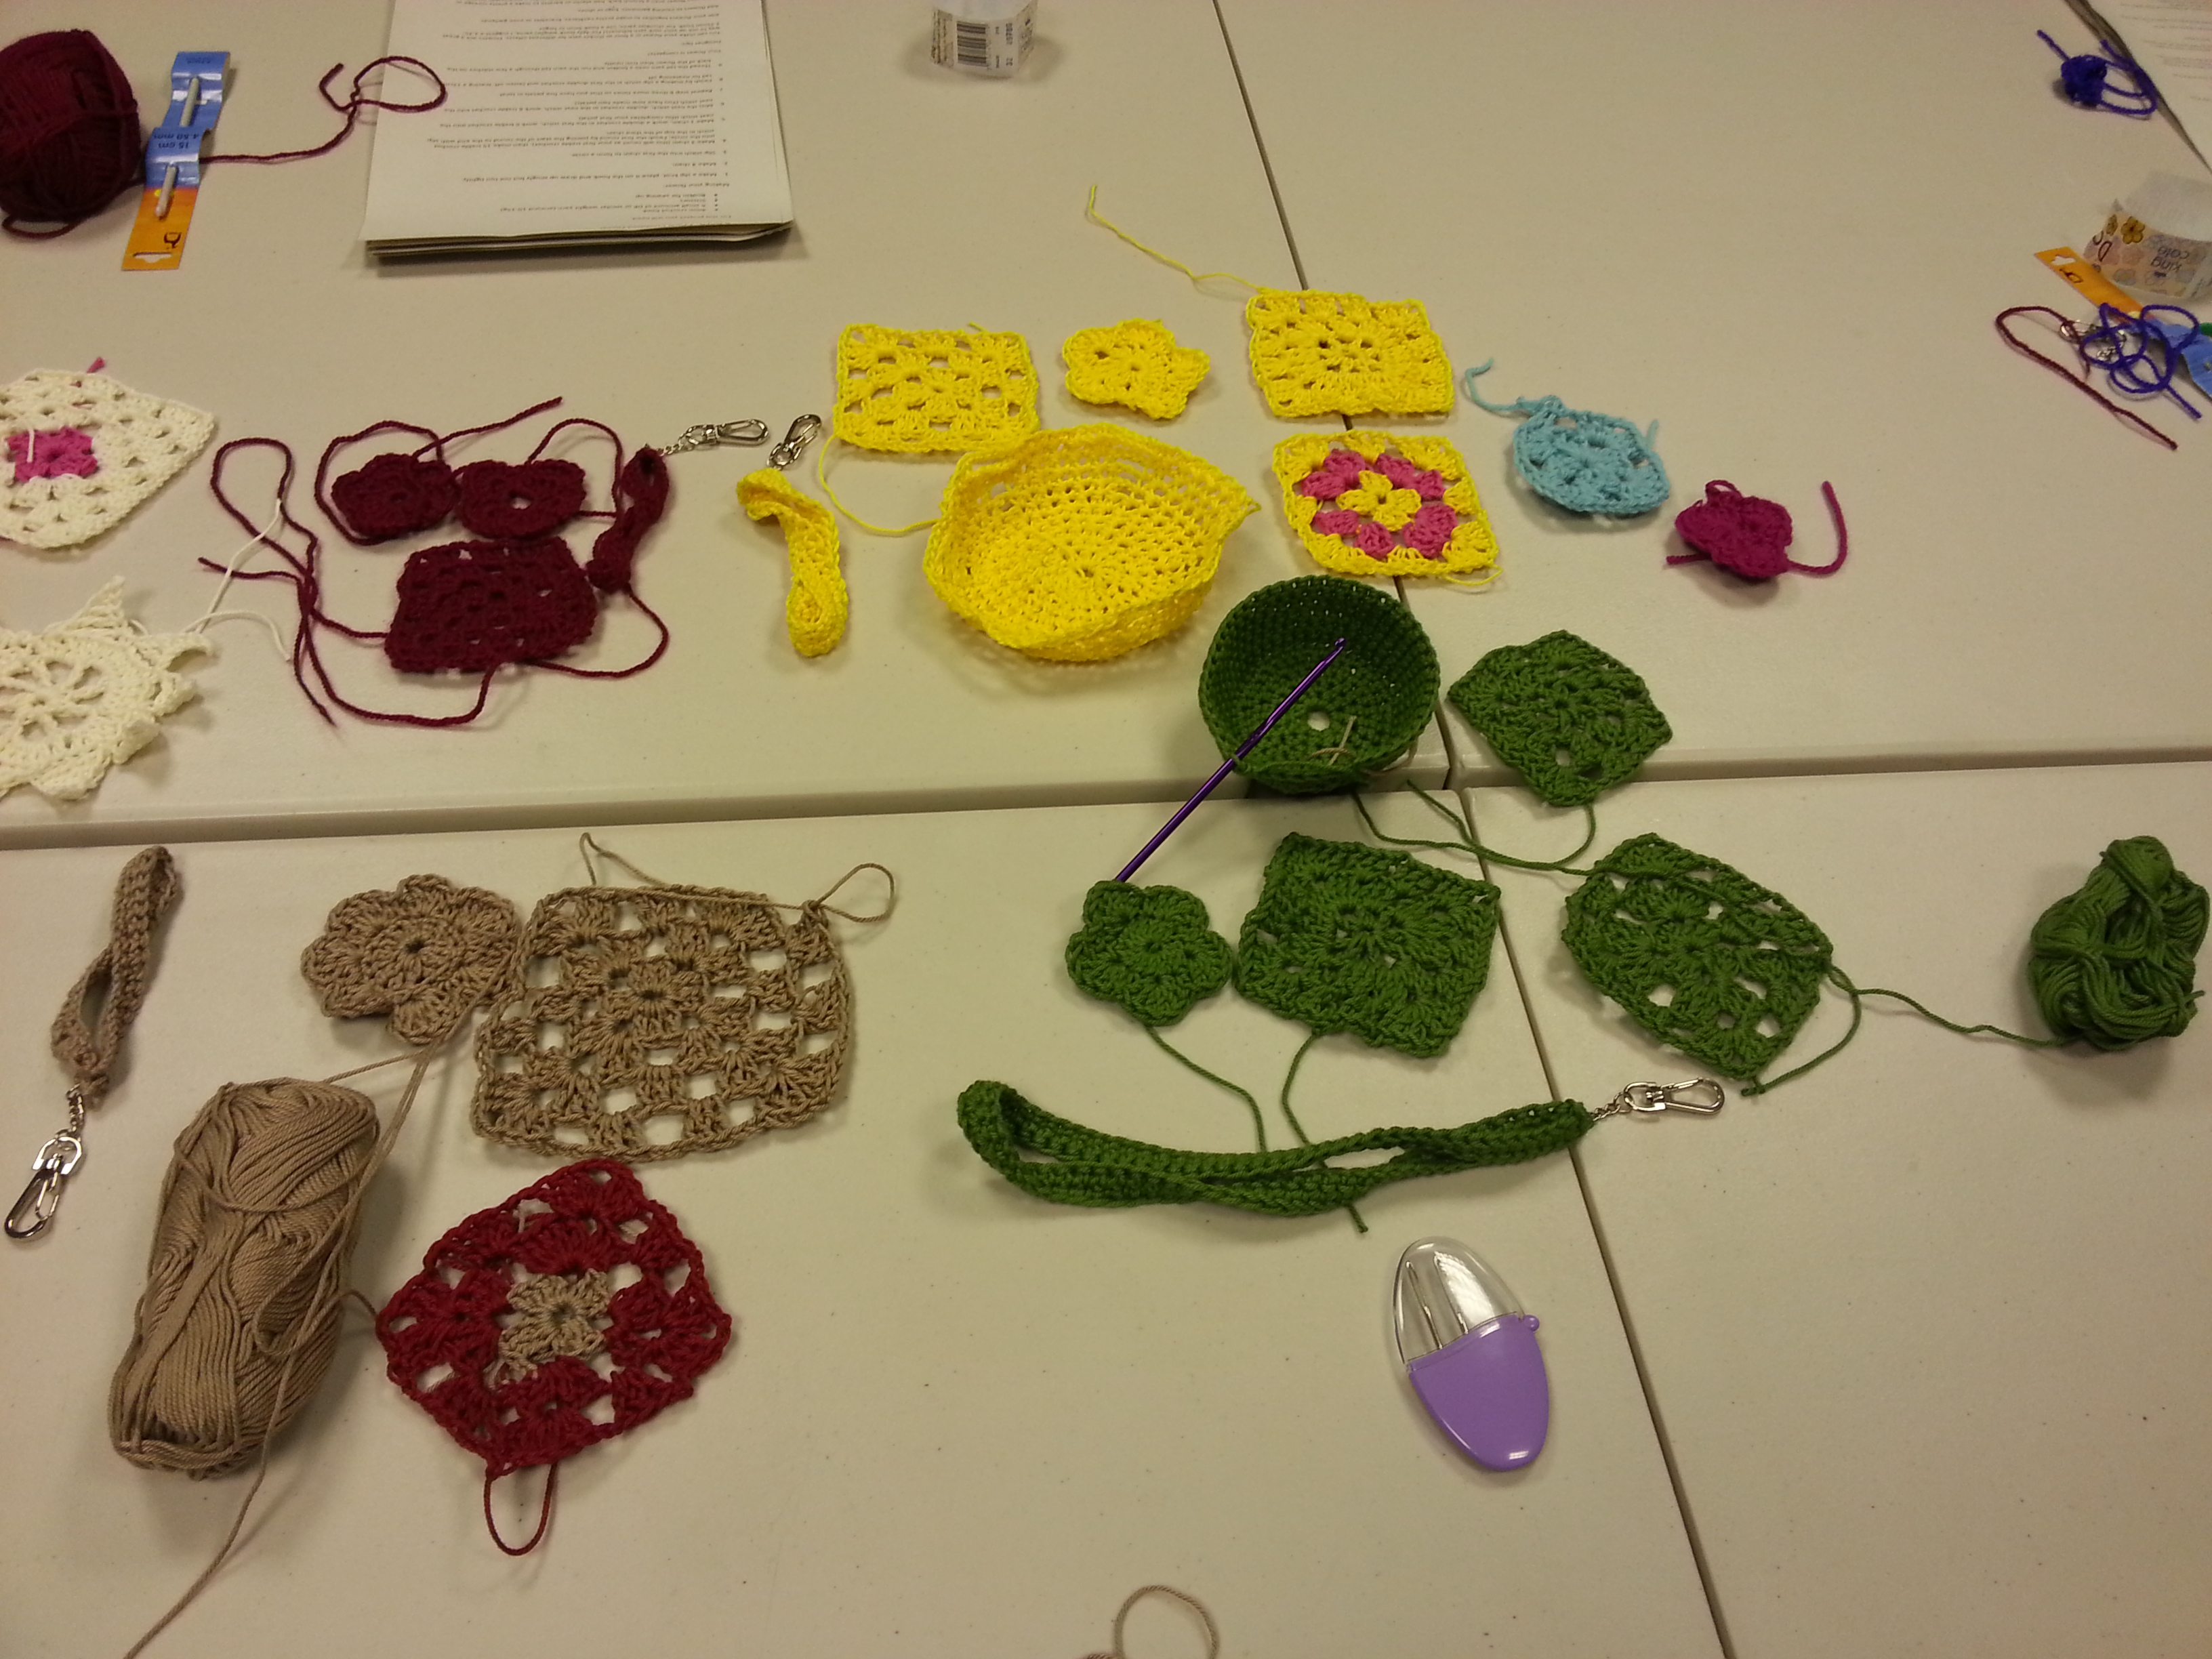 students' work from a beginners crochet workshop with debbie tomkies of dt craft and design